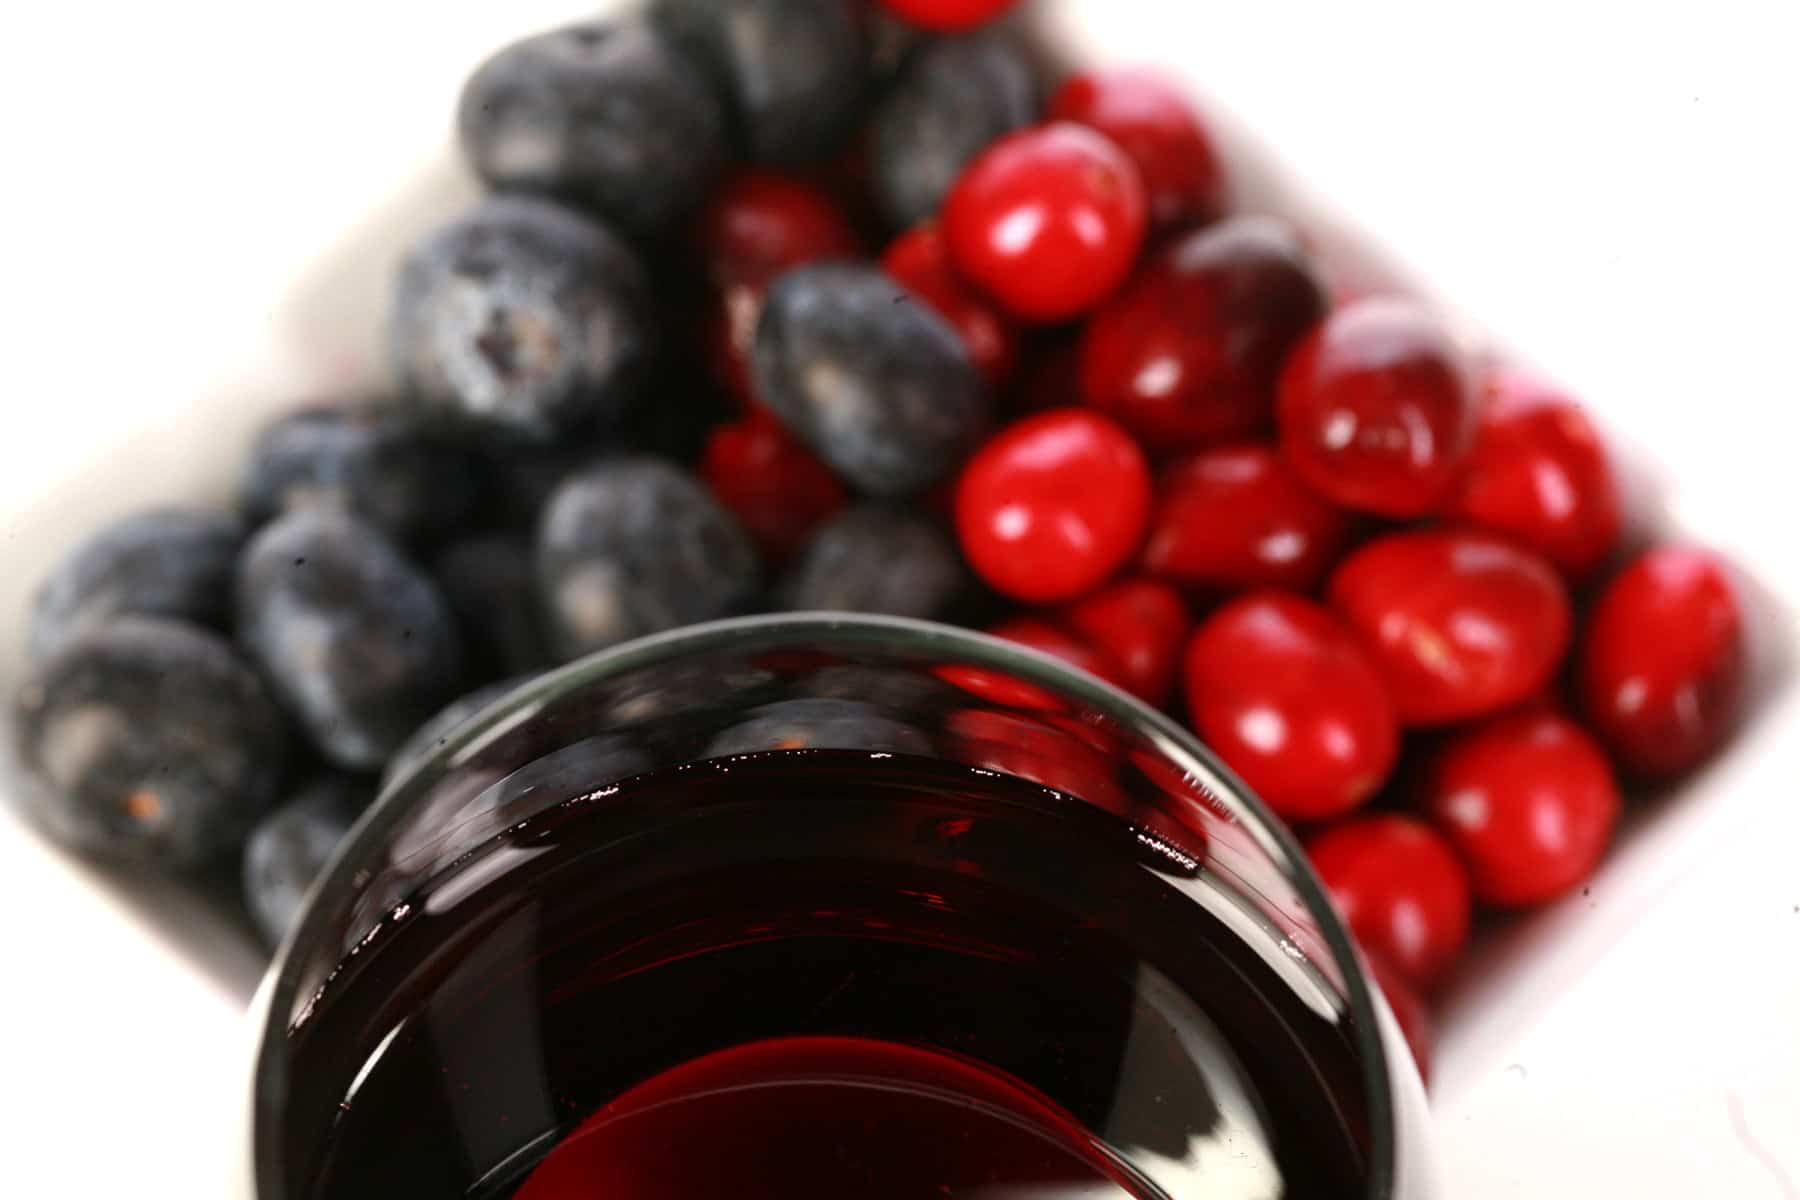 A glass of red wine is pictured next to a small bowl of cranberries and blueberries.